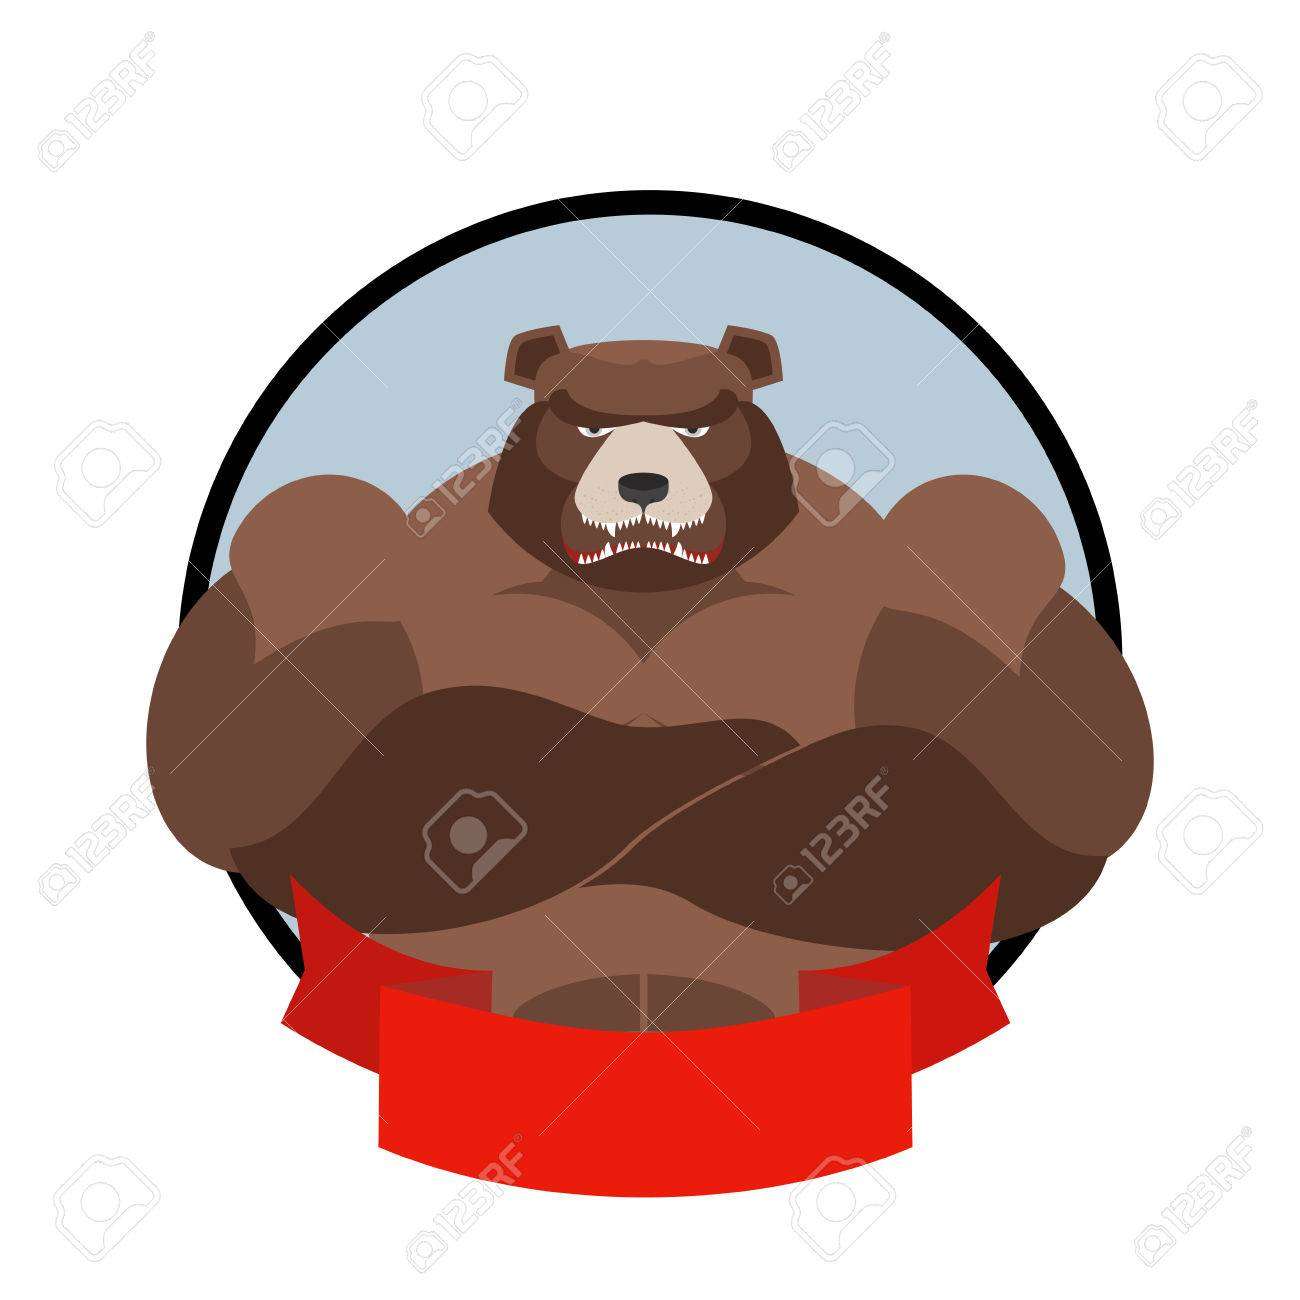 strong bear logo for sports club team grizzly bear with big rh 123rf com grizzly bear logo design